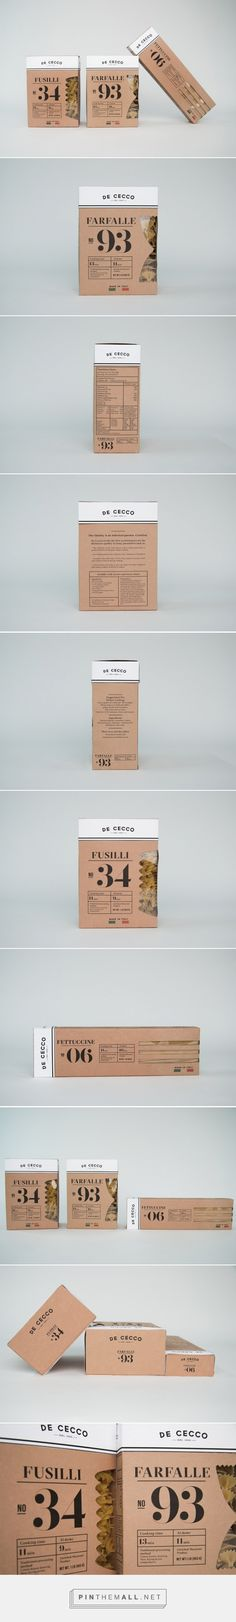 De Cecco Pasta packaging designed by Anna Ahnborg - http://www.packagingoftheworld.com/2015/08/de-cecco-pasta-student-project.html - created via http://pinthemall.net